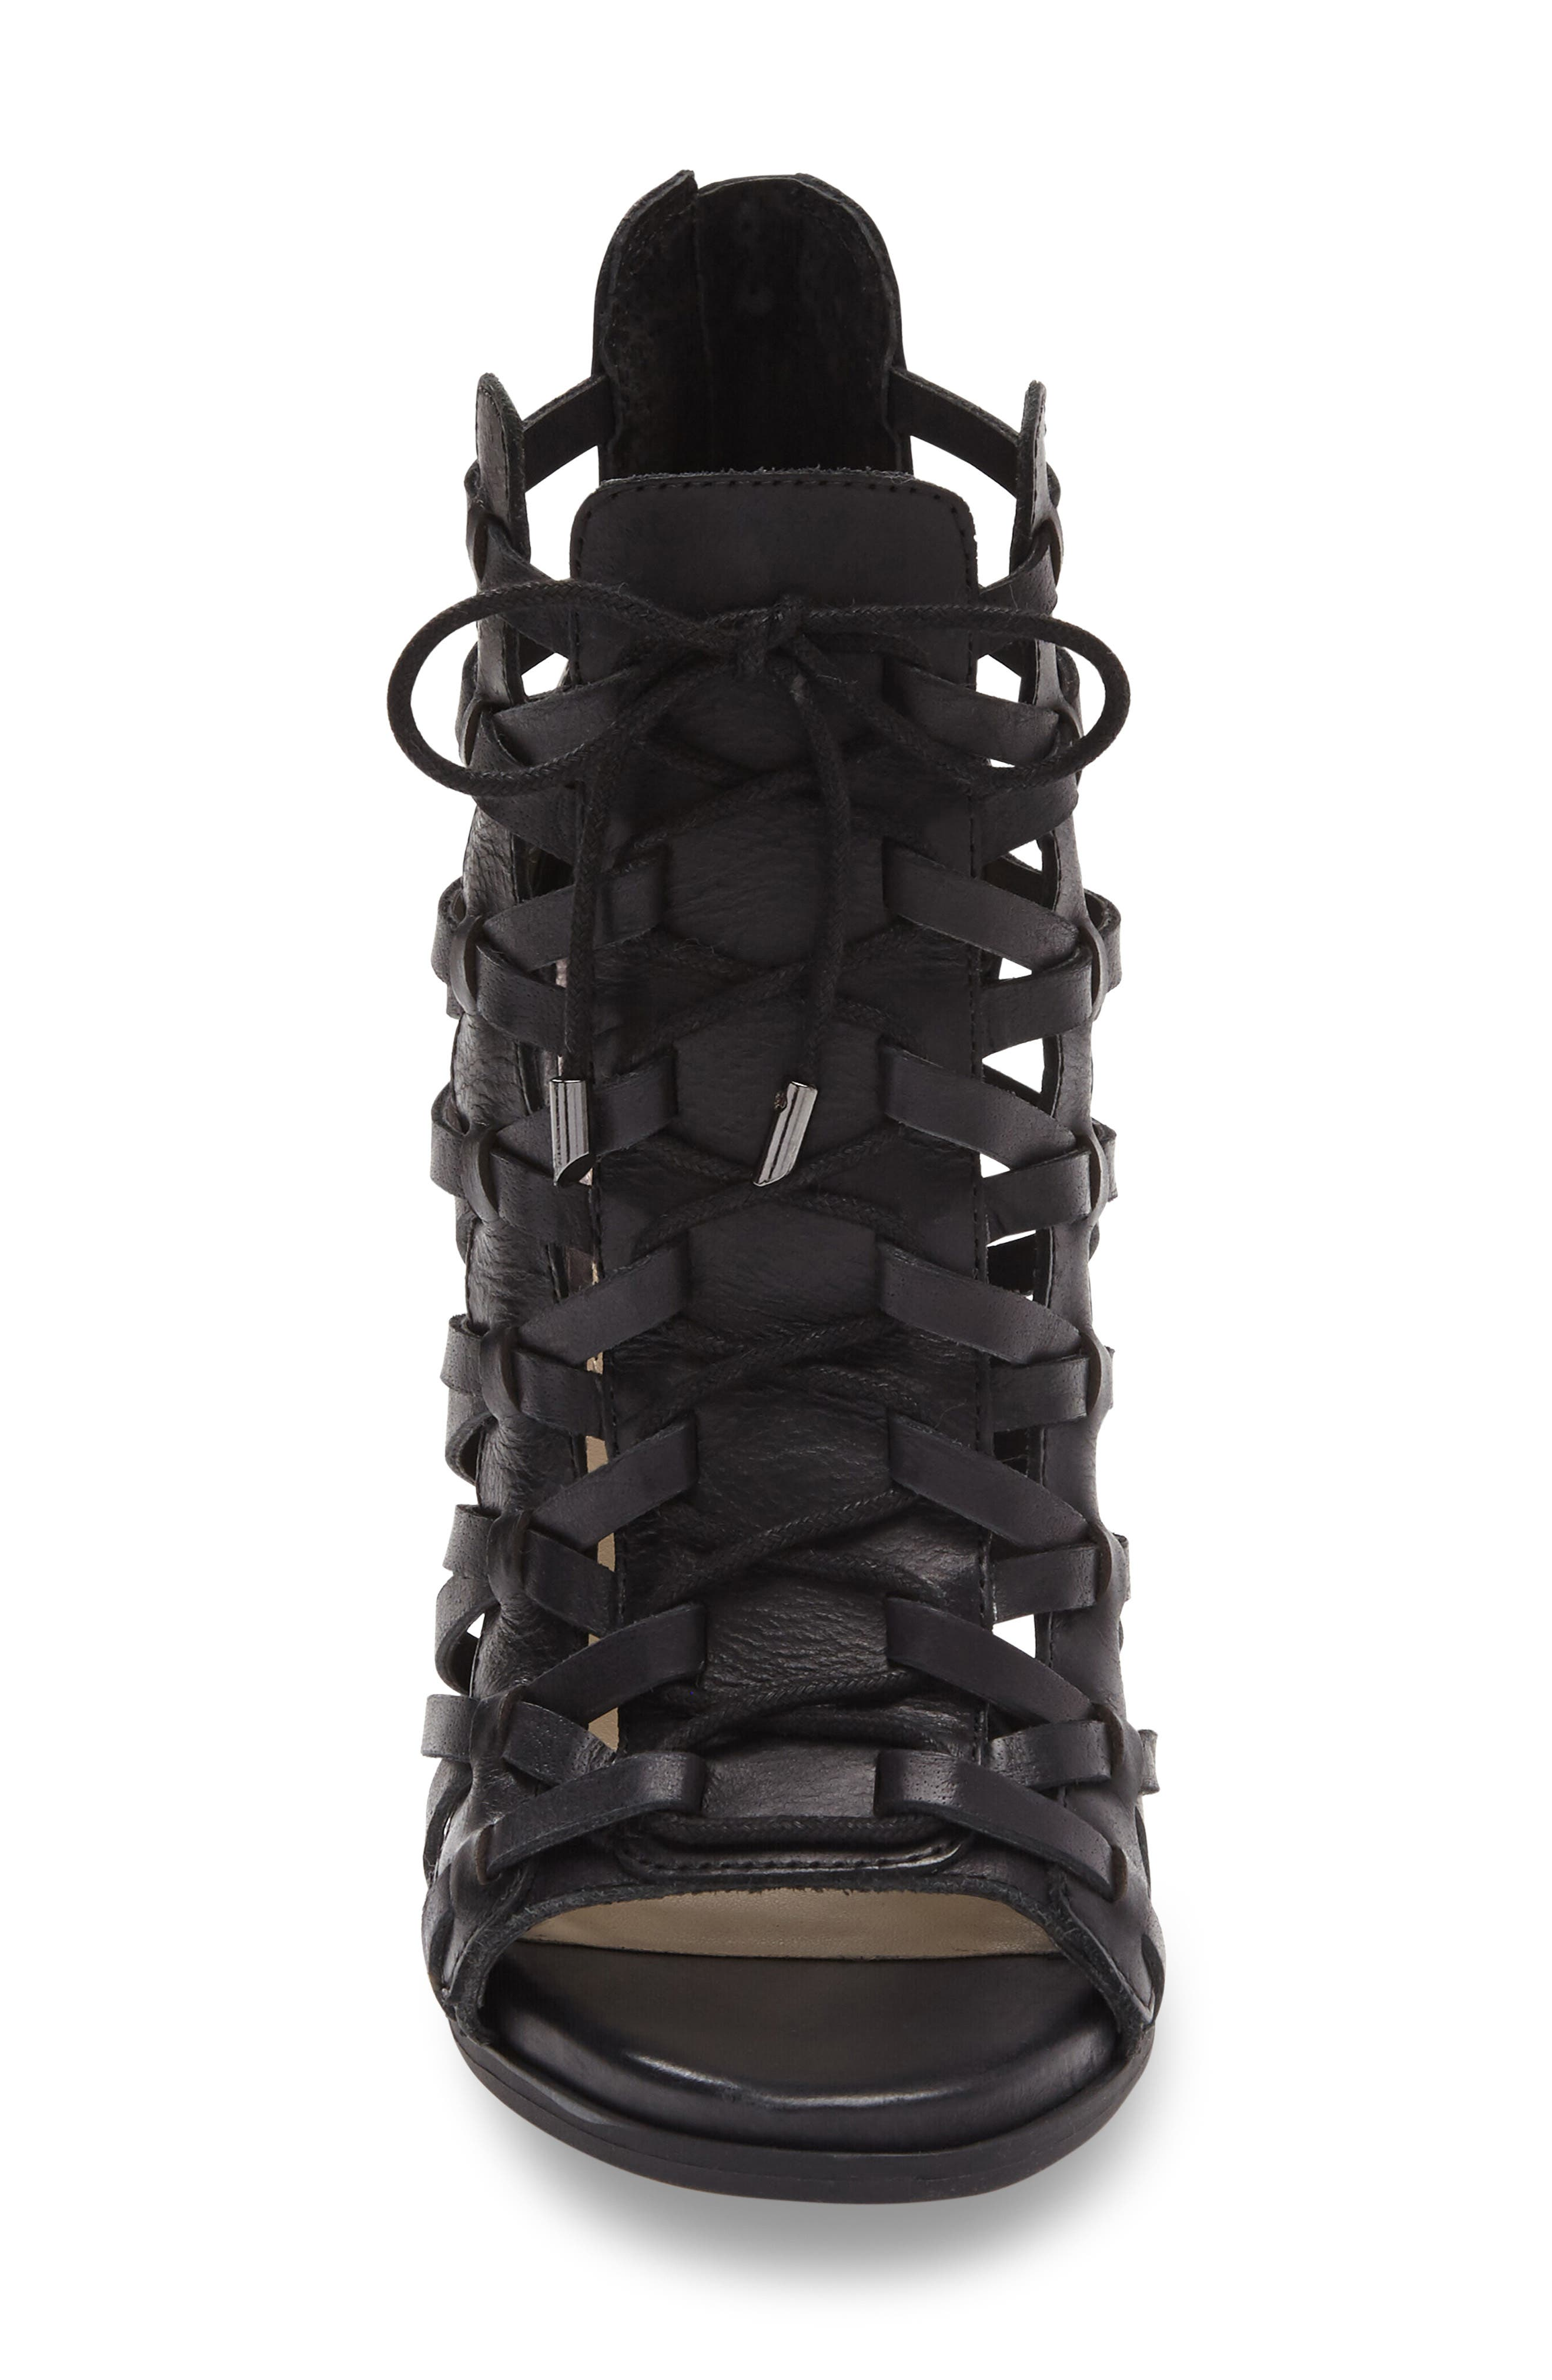 JESSICA SIMPSON,                             Riana Woven Leather Cage Sandal,                             Alternate thumbnail 3, color,                             001